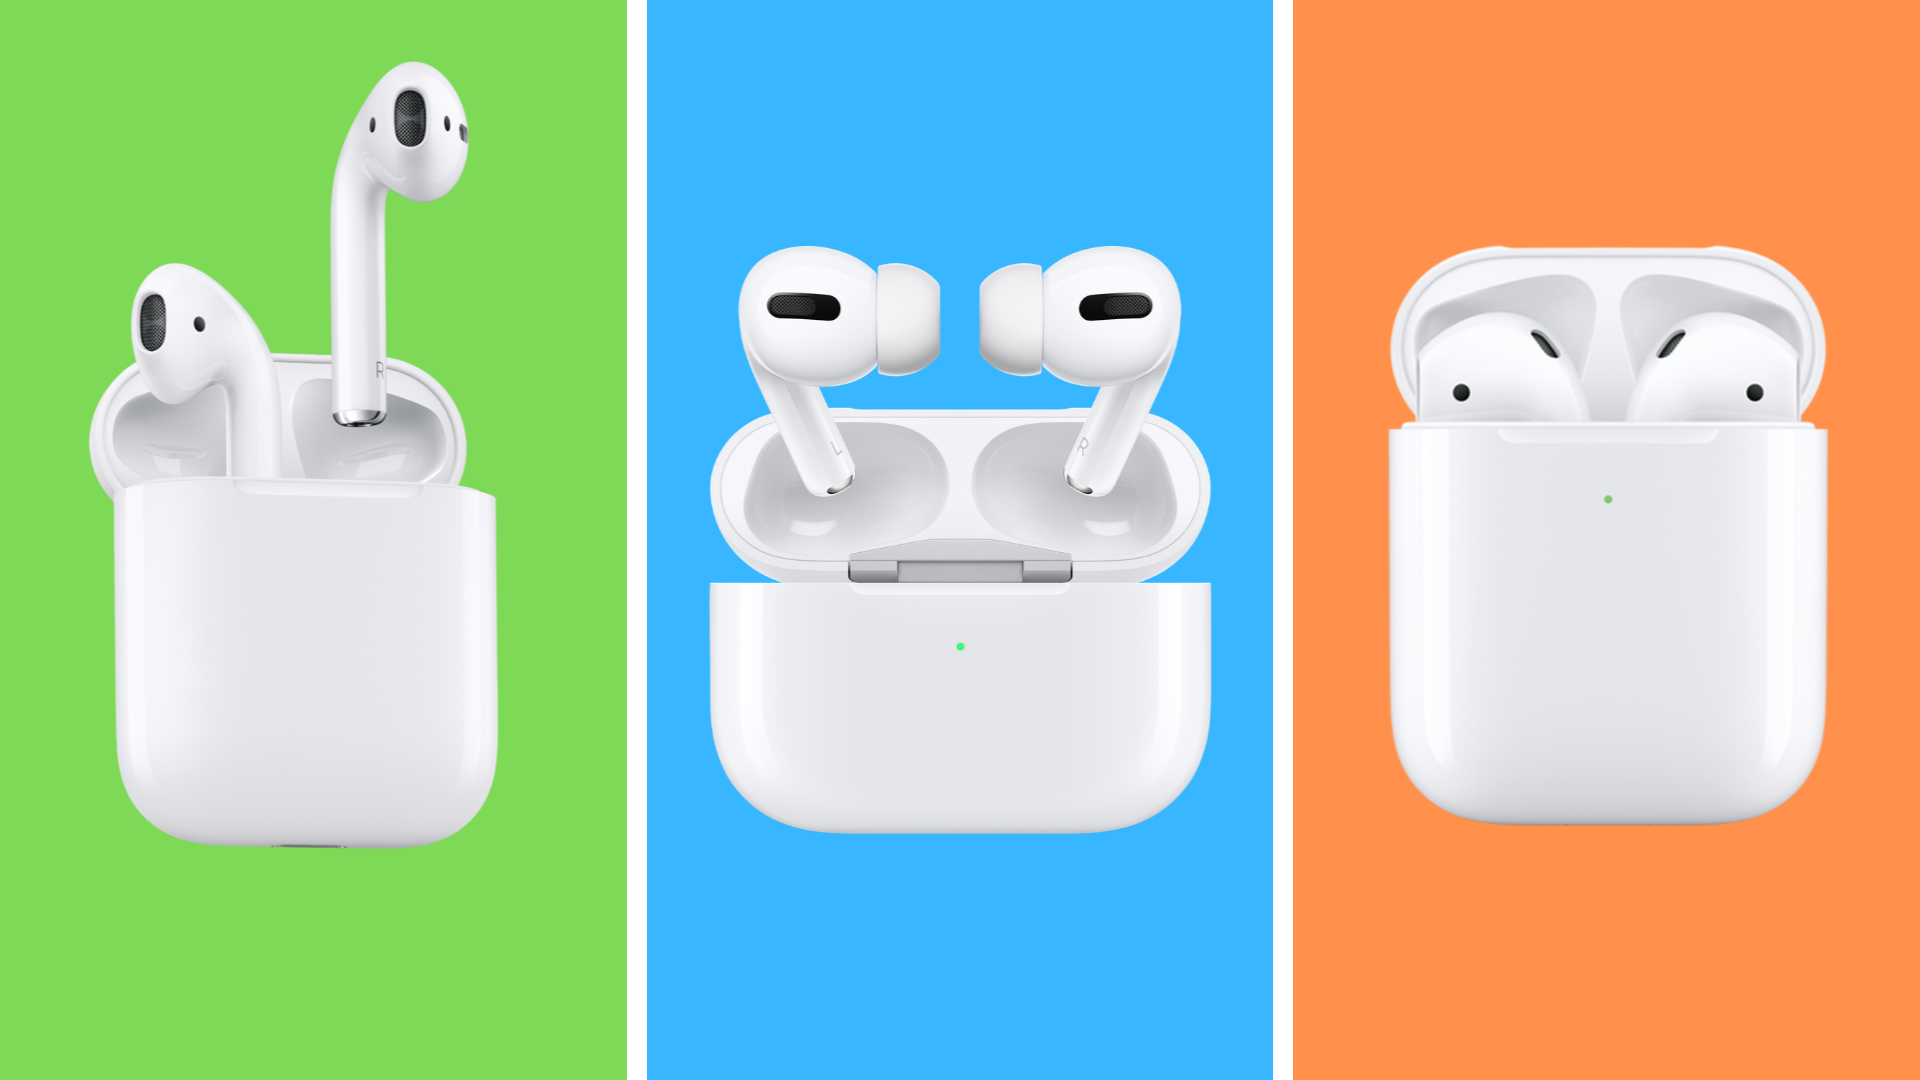 Hurry! These rarely on-sale Apple AirPods are massively reduced over at Amazon